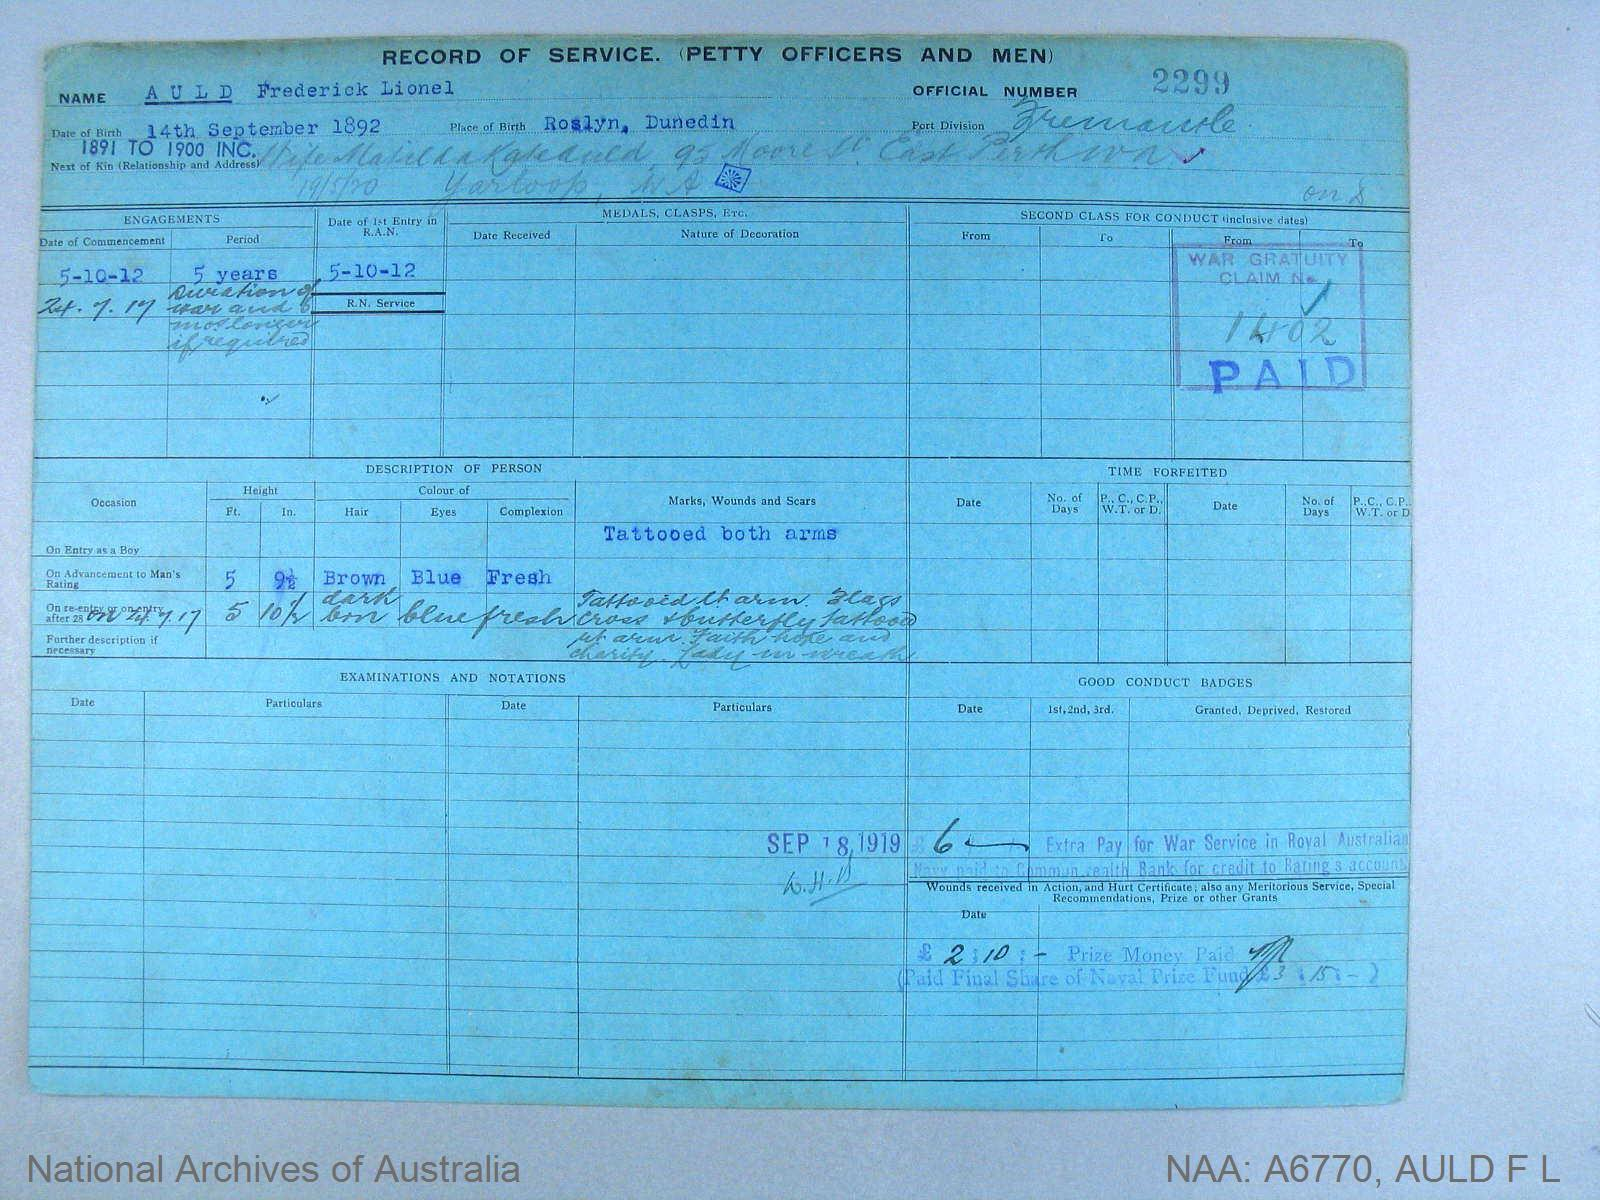 AULD FREDERICK LIONEL : Service Number - 2299 : Date of birth - 14 Sep 1892 : Place of birth - ROSLYN DUNEDIN : Place of enlistment - FREMANTLE : Next of Kin - AULD MATILDA